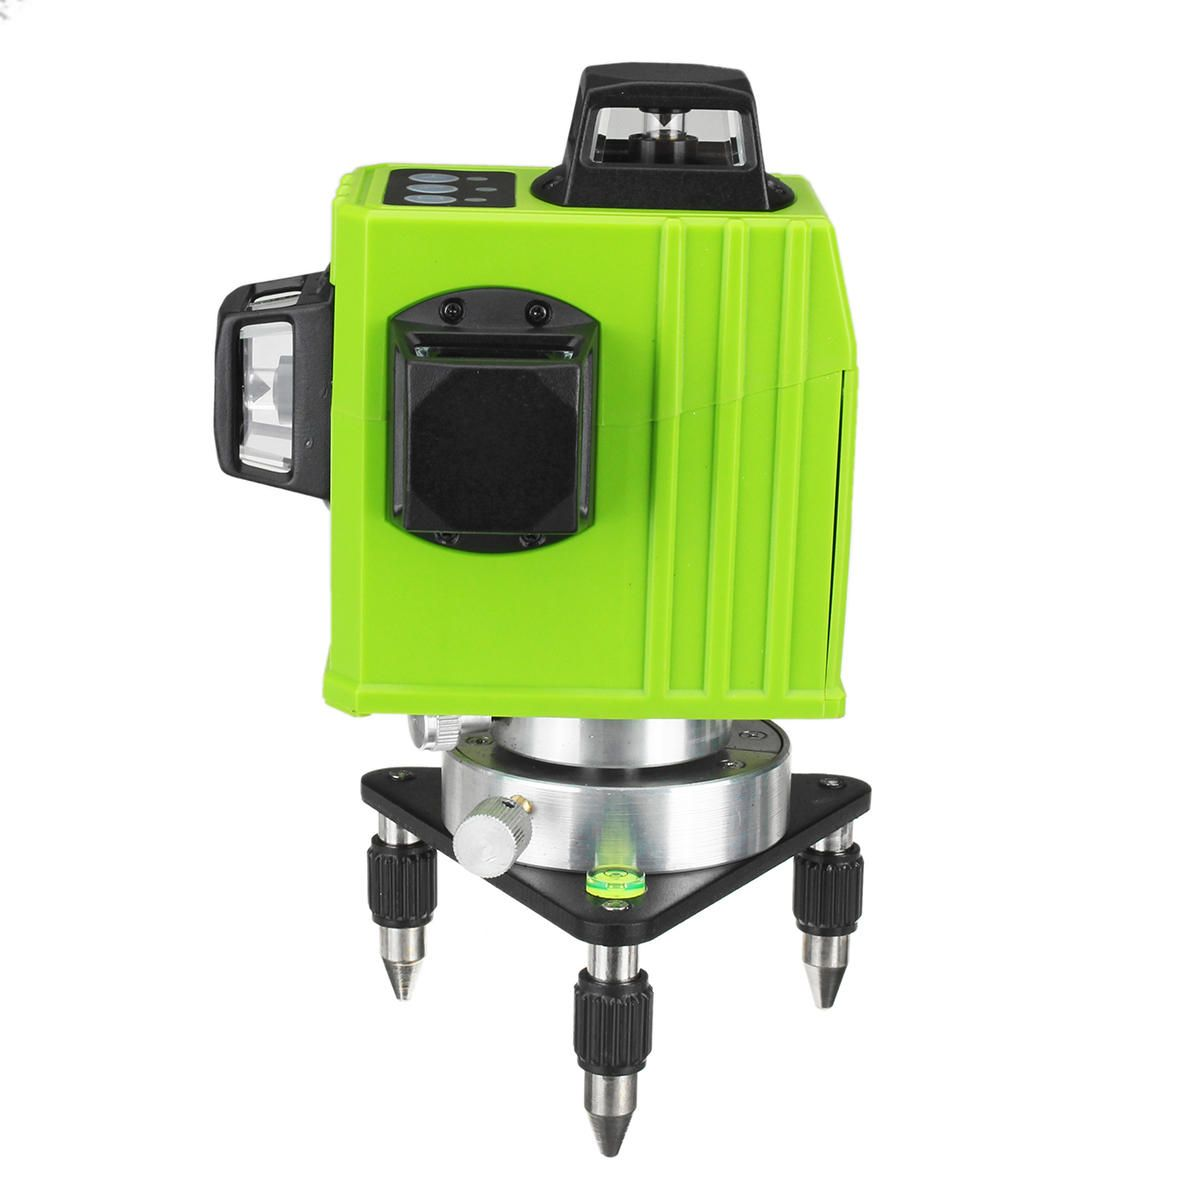 Us 149 99 3d Green 12 Line Laser Level Self Leveling Outdoor 360 Cross Measure Tool Measurement Analysis Instruments From Tools Industrial Scien